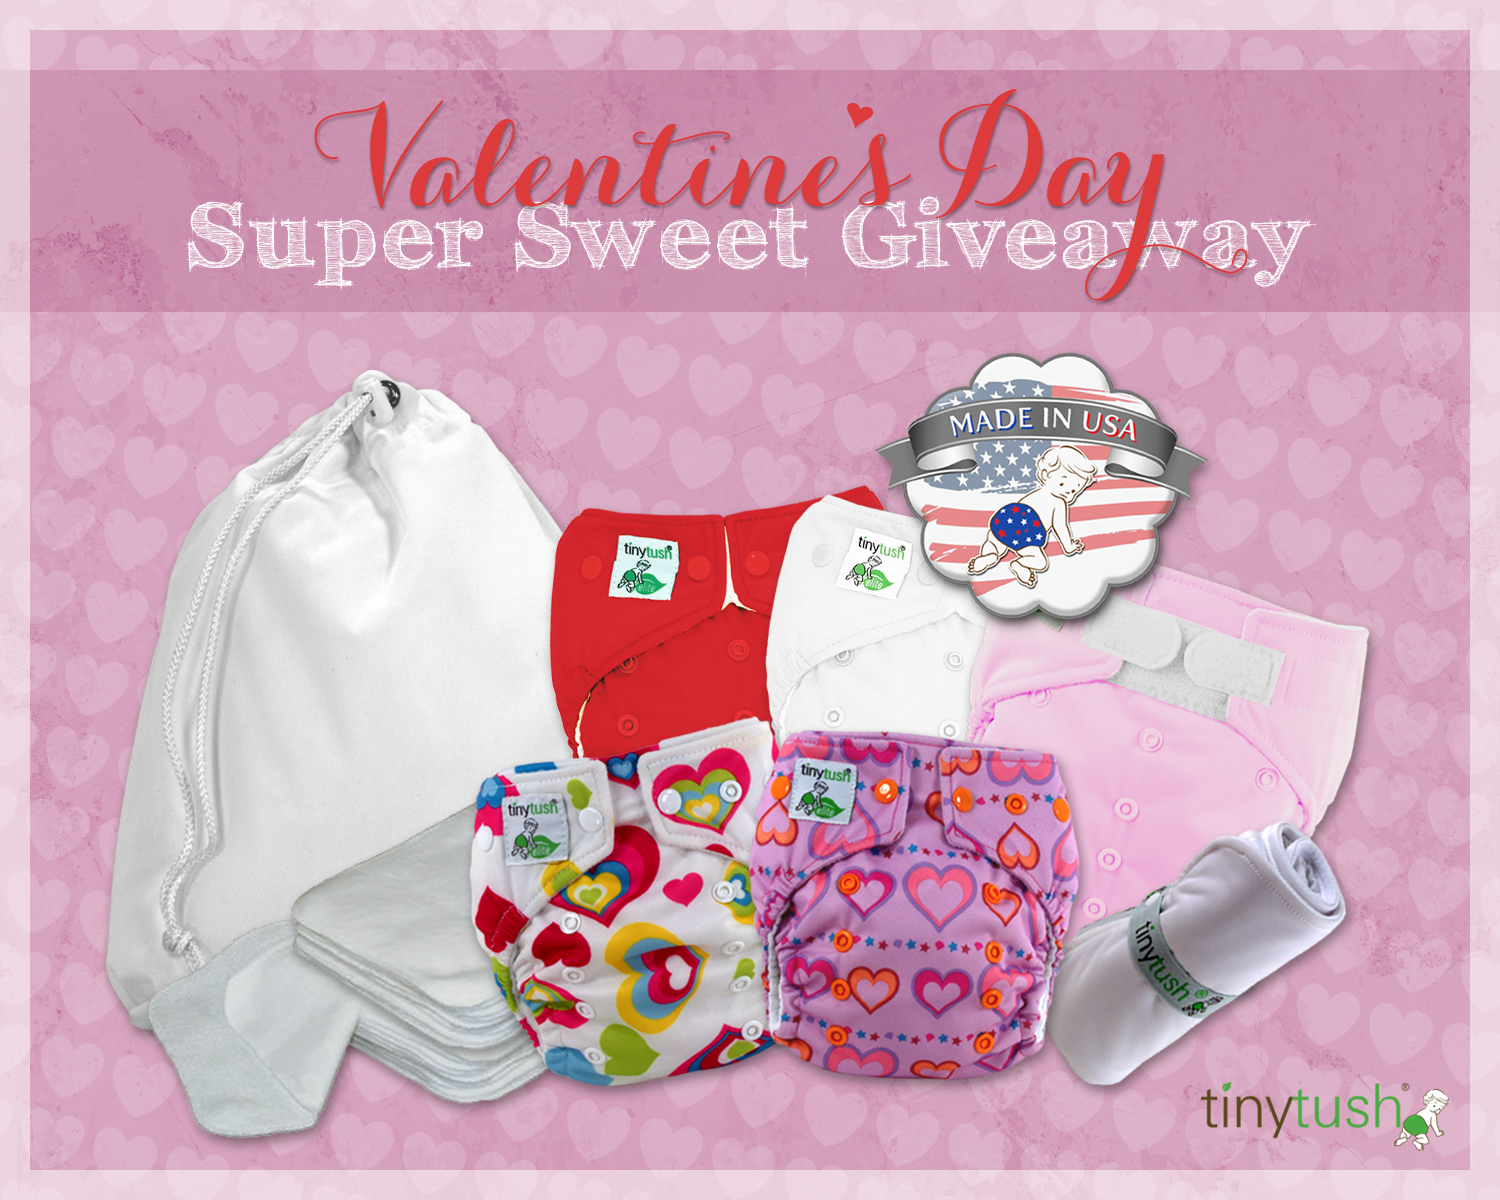 Join us for our Valentine's Day Super Sweet Giveaway